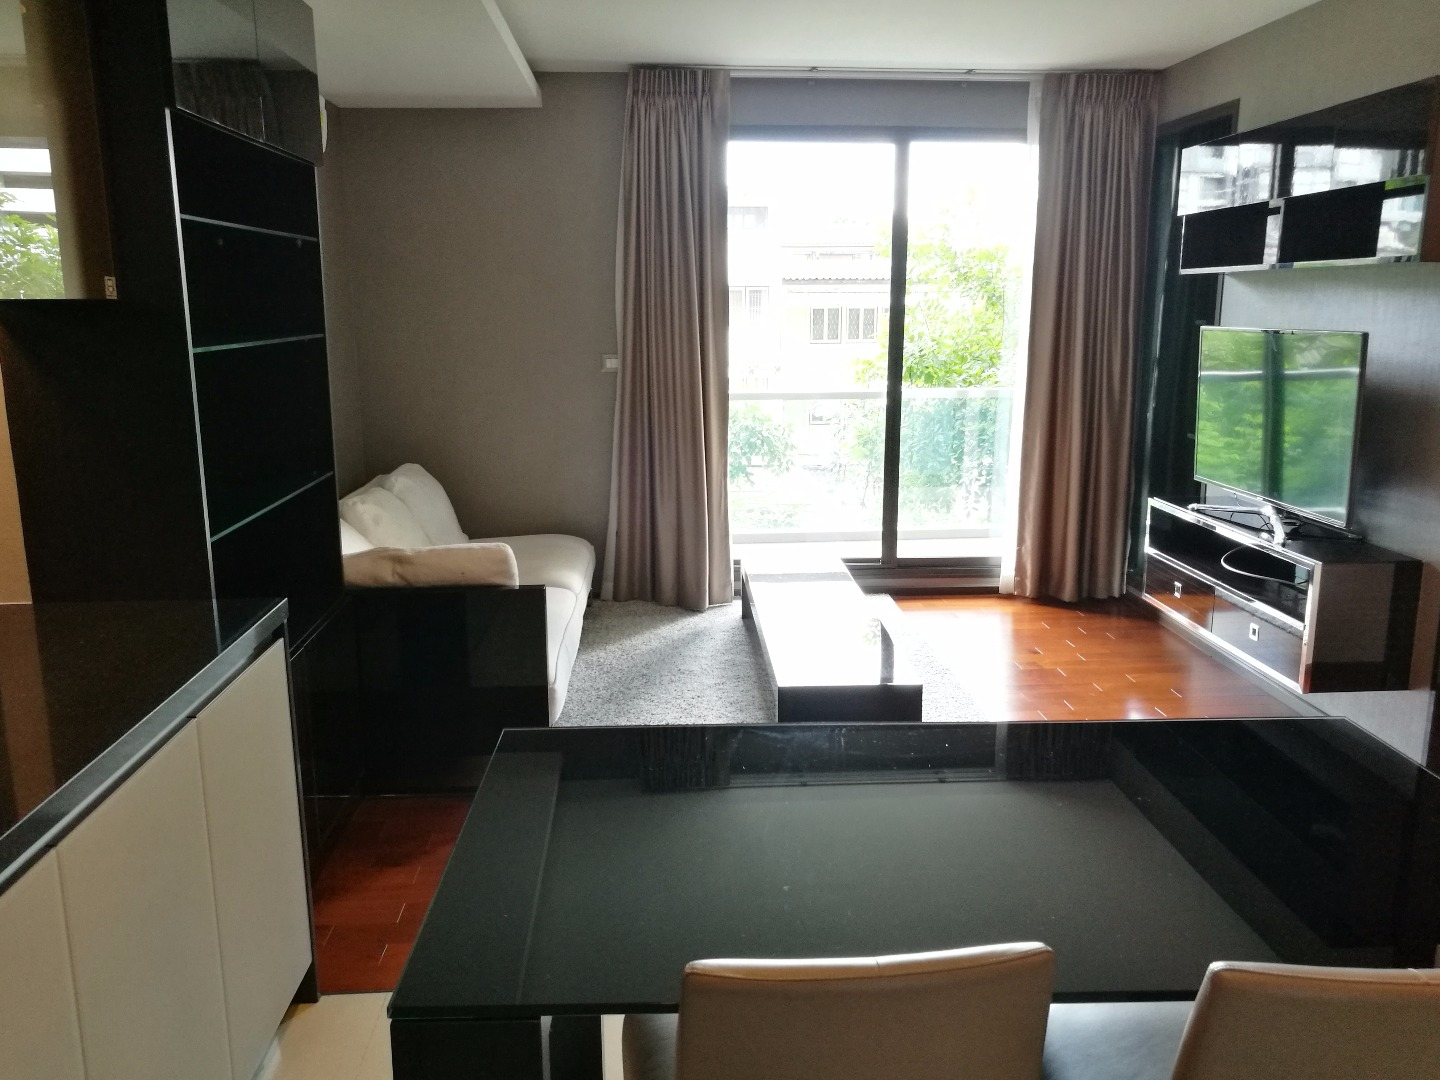 57 SQM Luxury 1 BED for RENT , The address 61 @ 9.2ล้าน รวมโอน